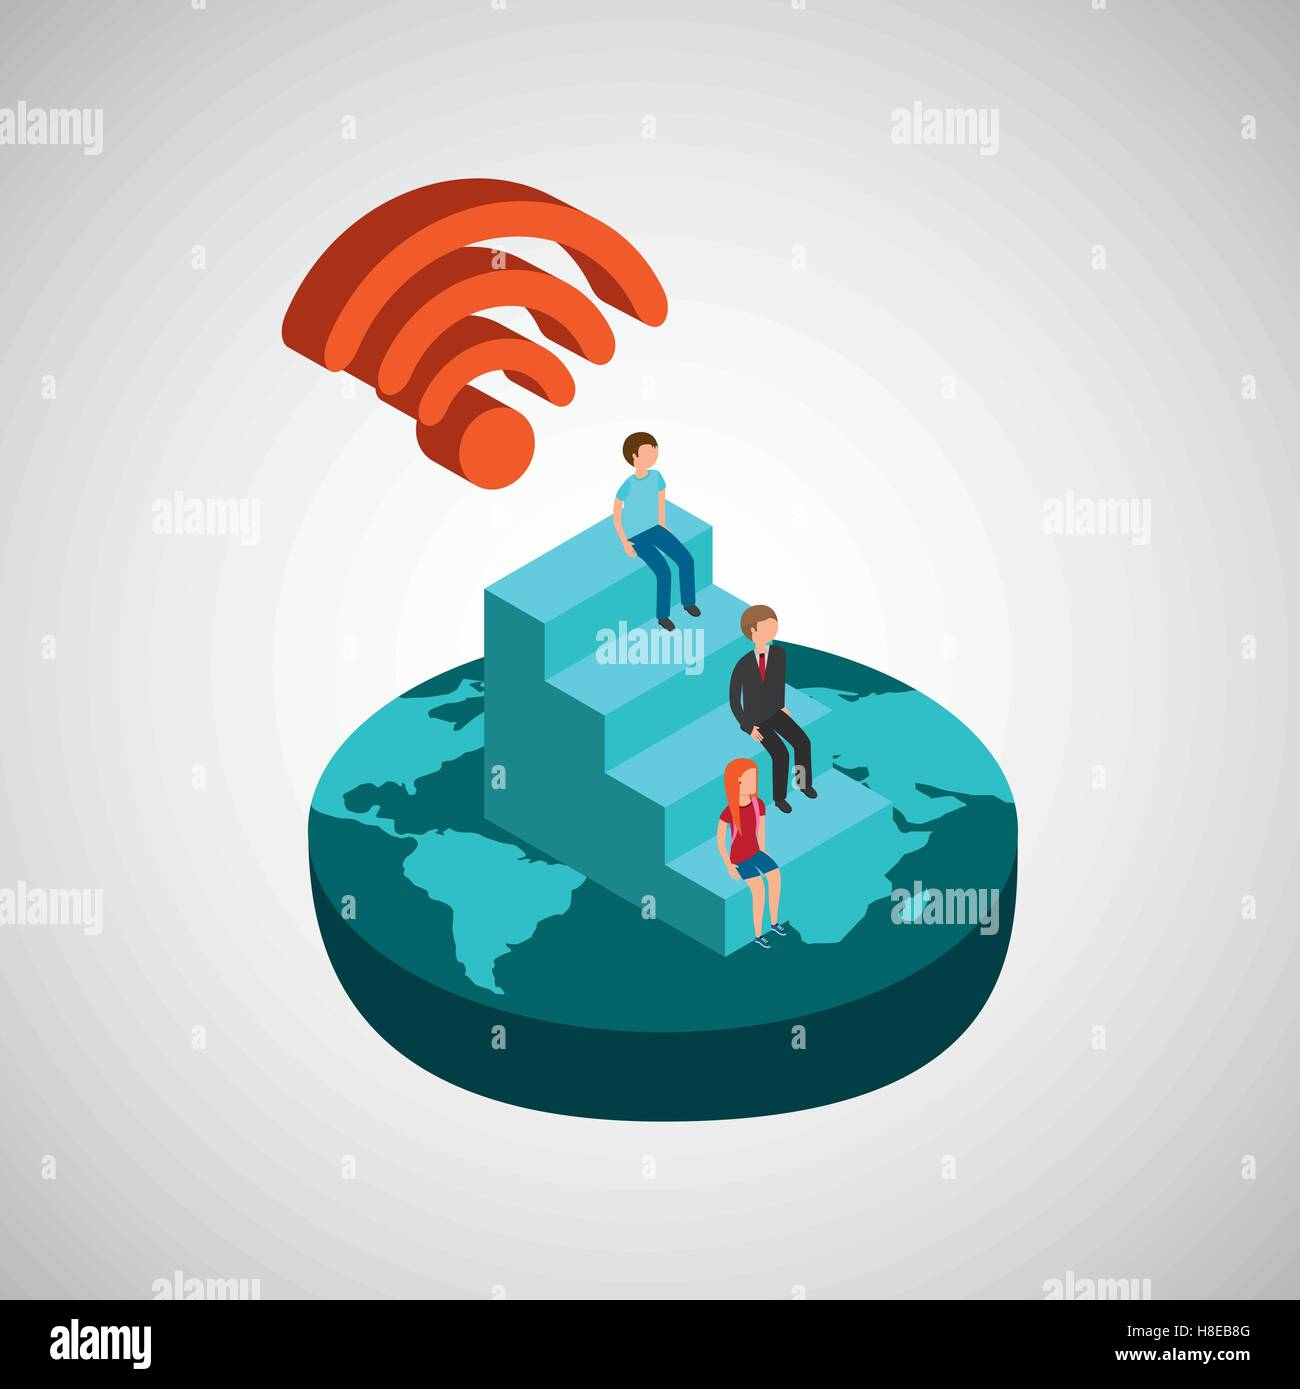 Wireless Router Person Stock Photos Vector Fpv Wiring Diagram Global Connection Wifi Digital Family Illustration Eps 10 Image